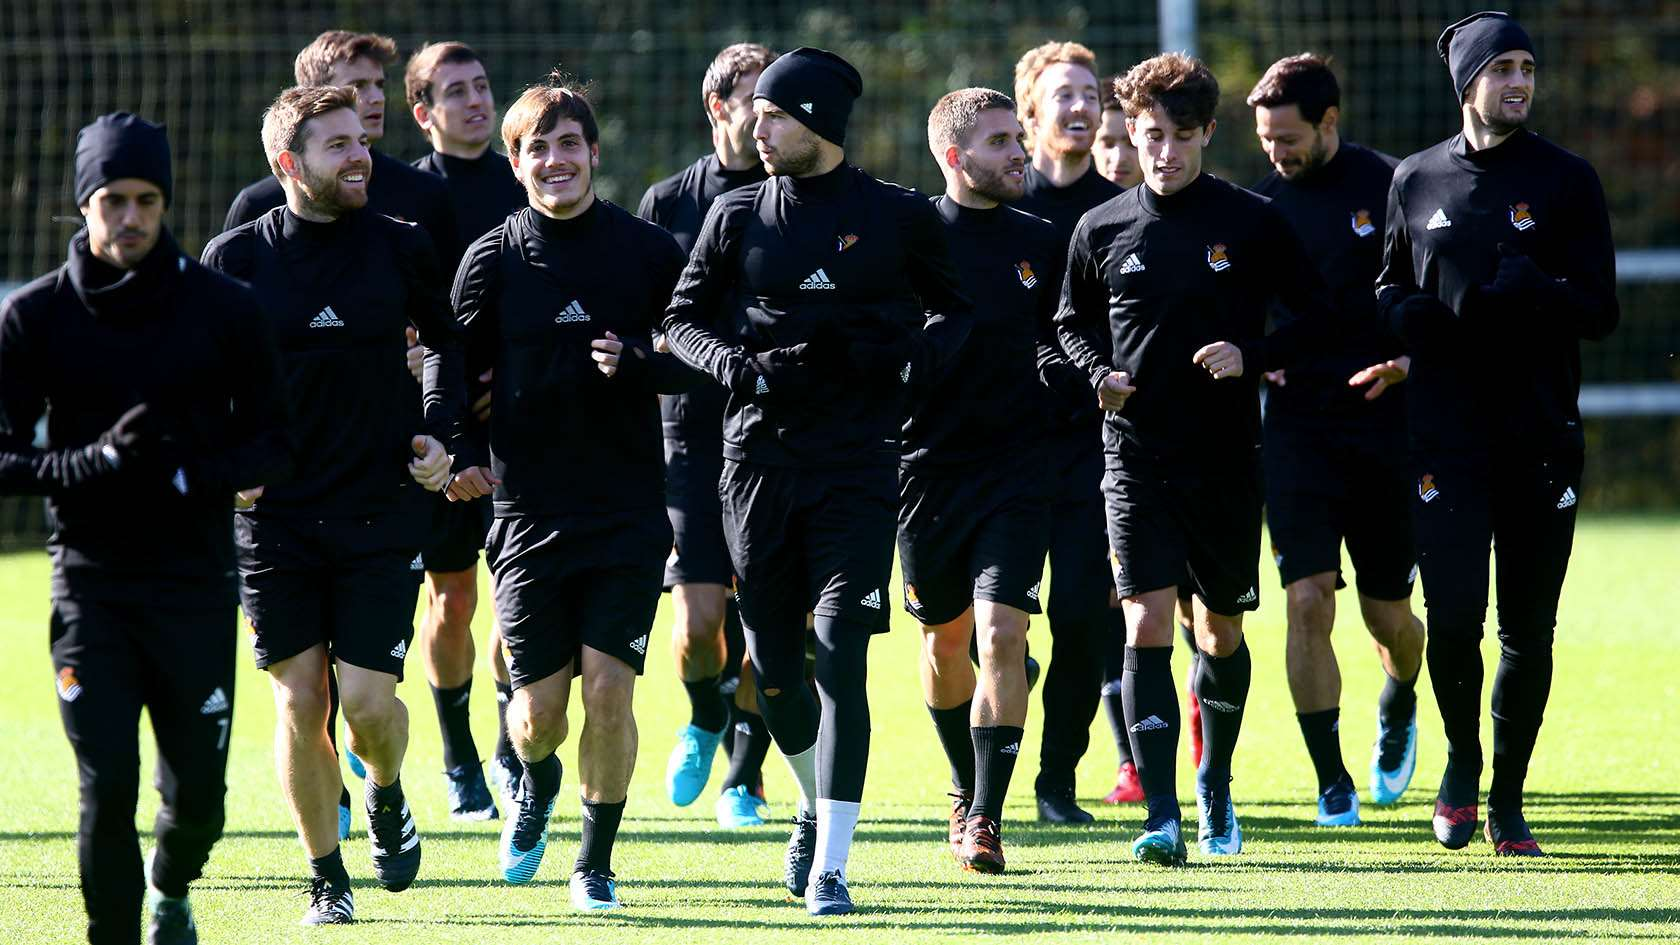 The coach announces squad for Girona - Real Sociedad de Football S.A.D. The coach announces squad for Girona - 웹